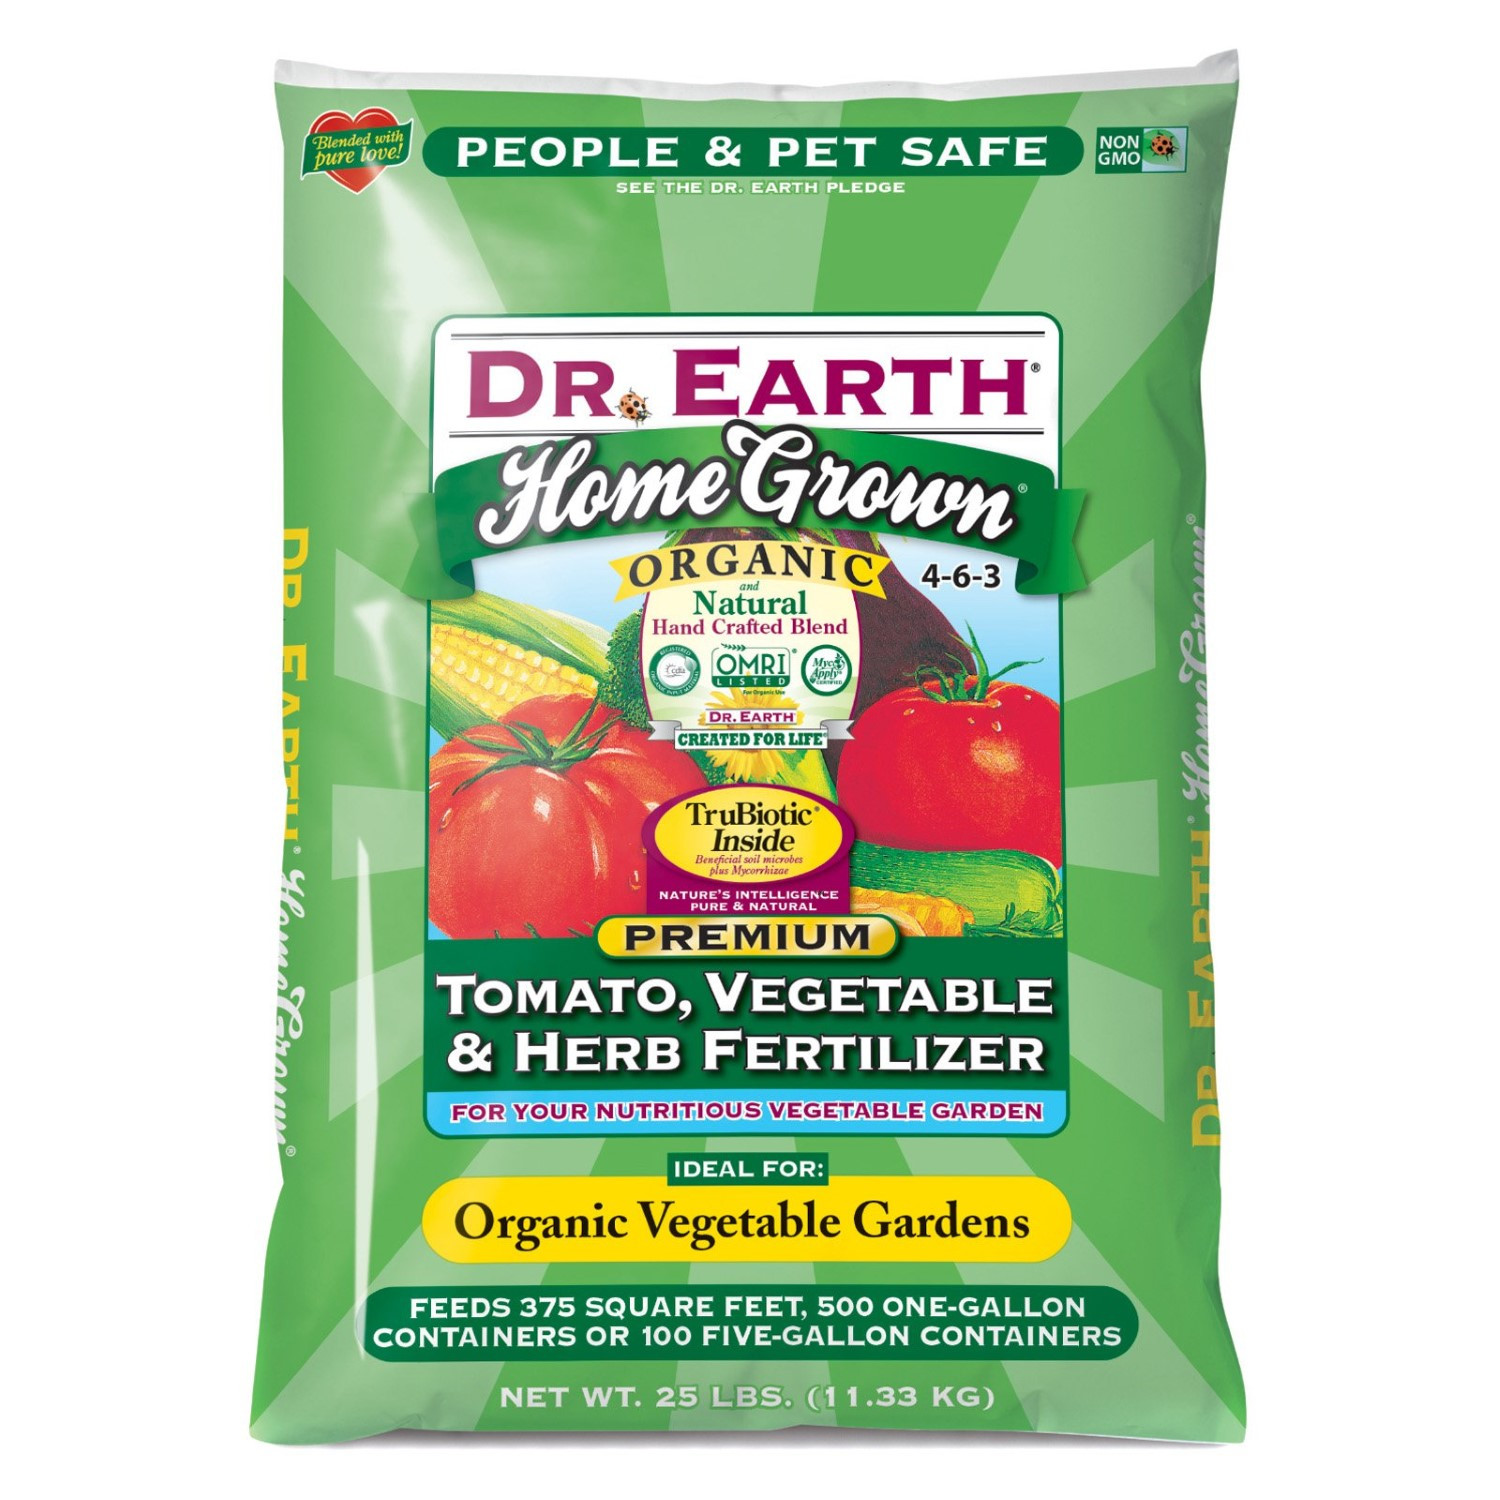 Organic Tomato Fertilizer  Dr Earth Organic 5 Tomato Ve able and Herb Fertilizer